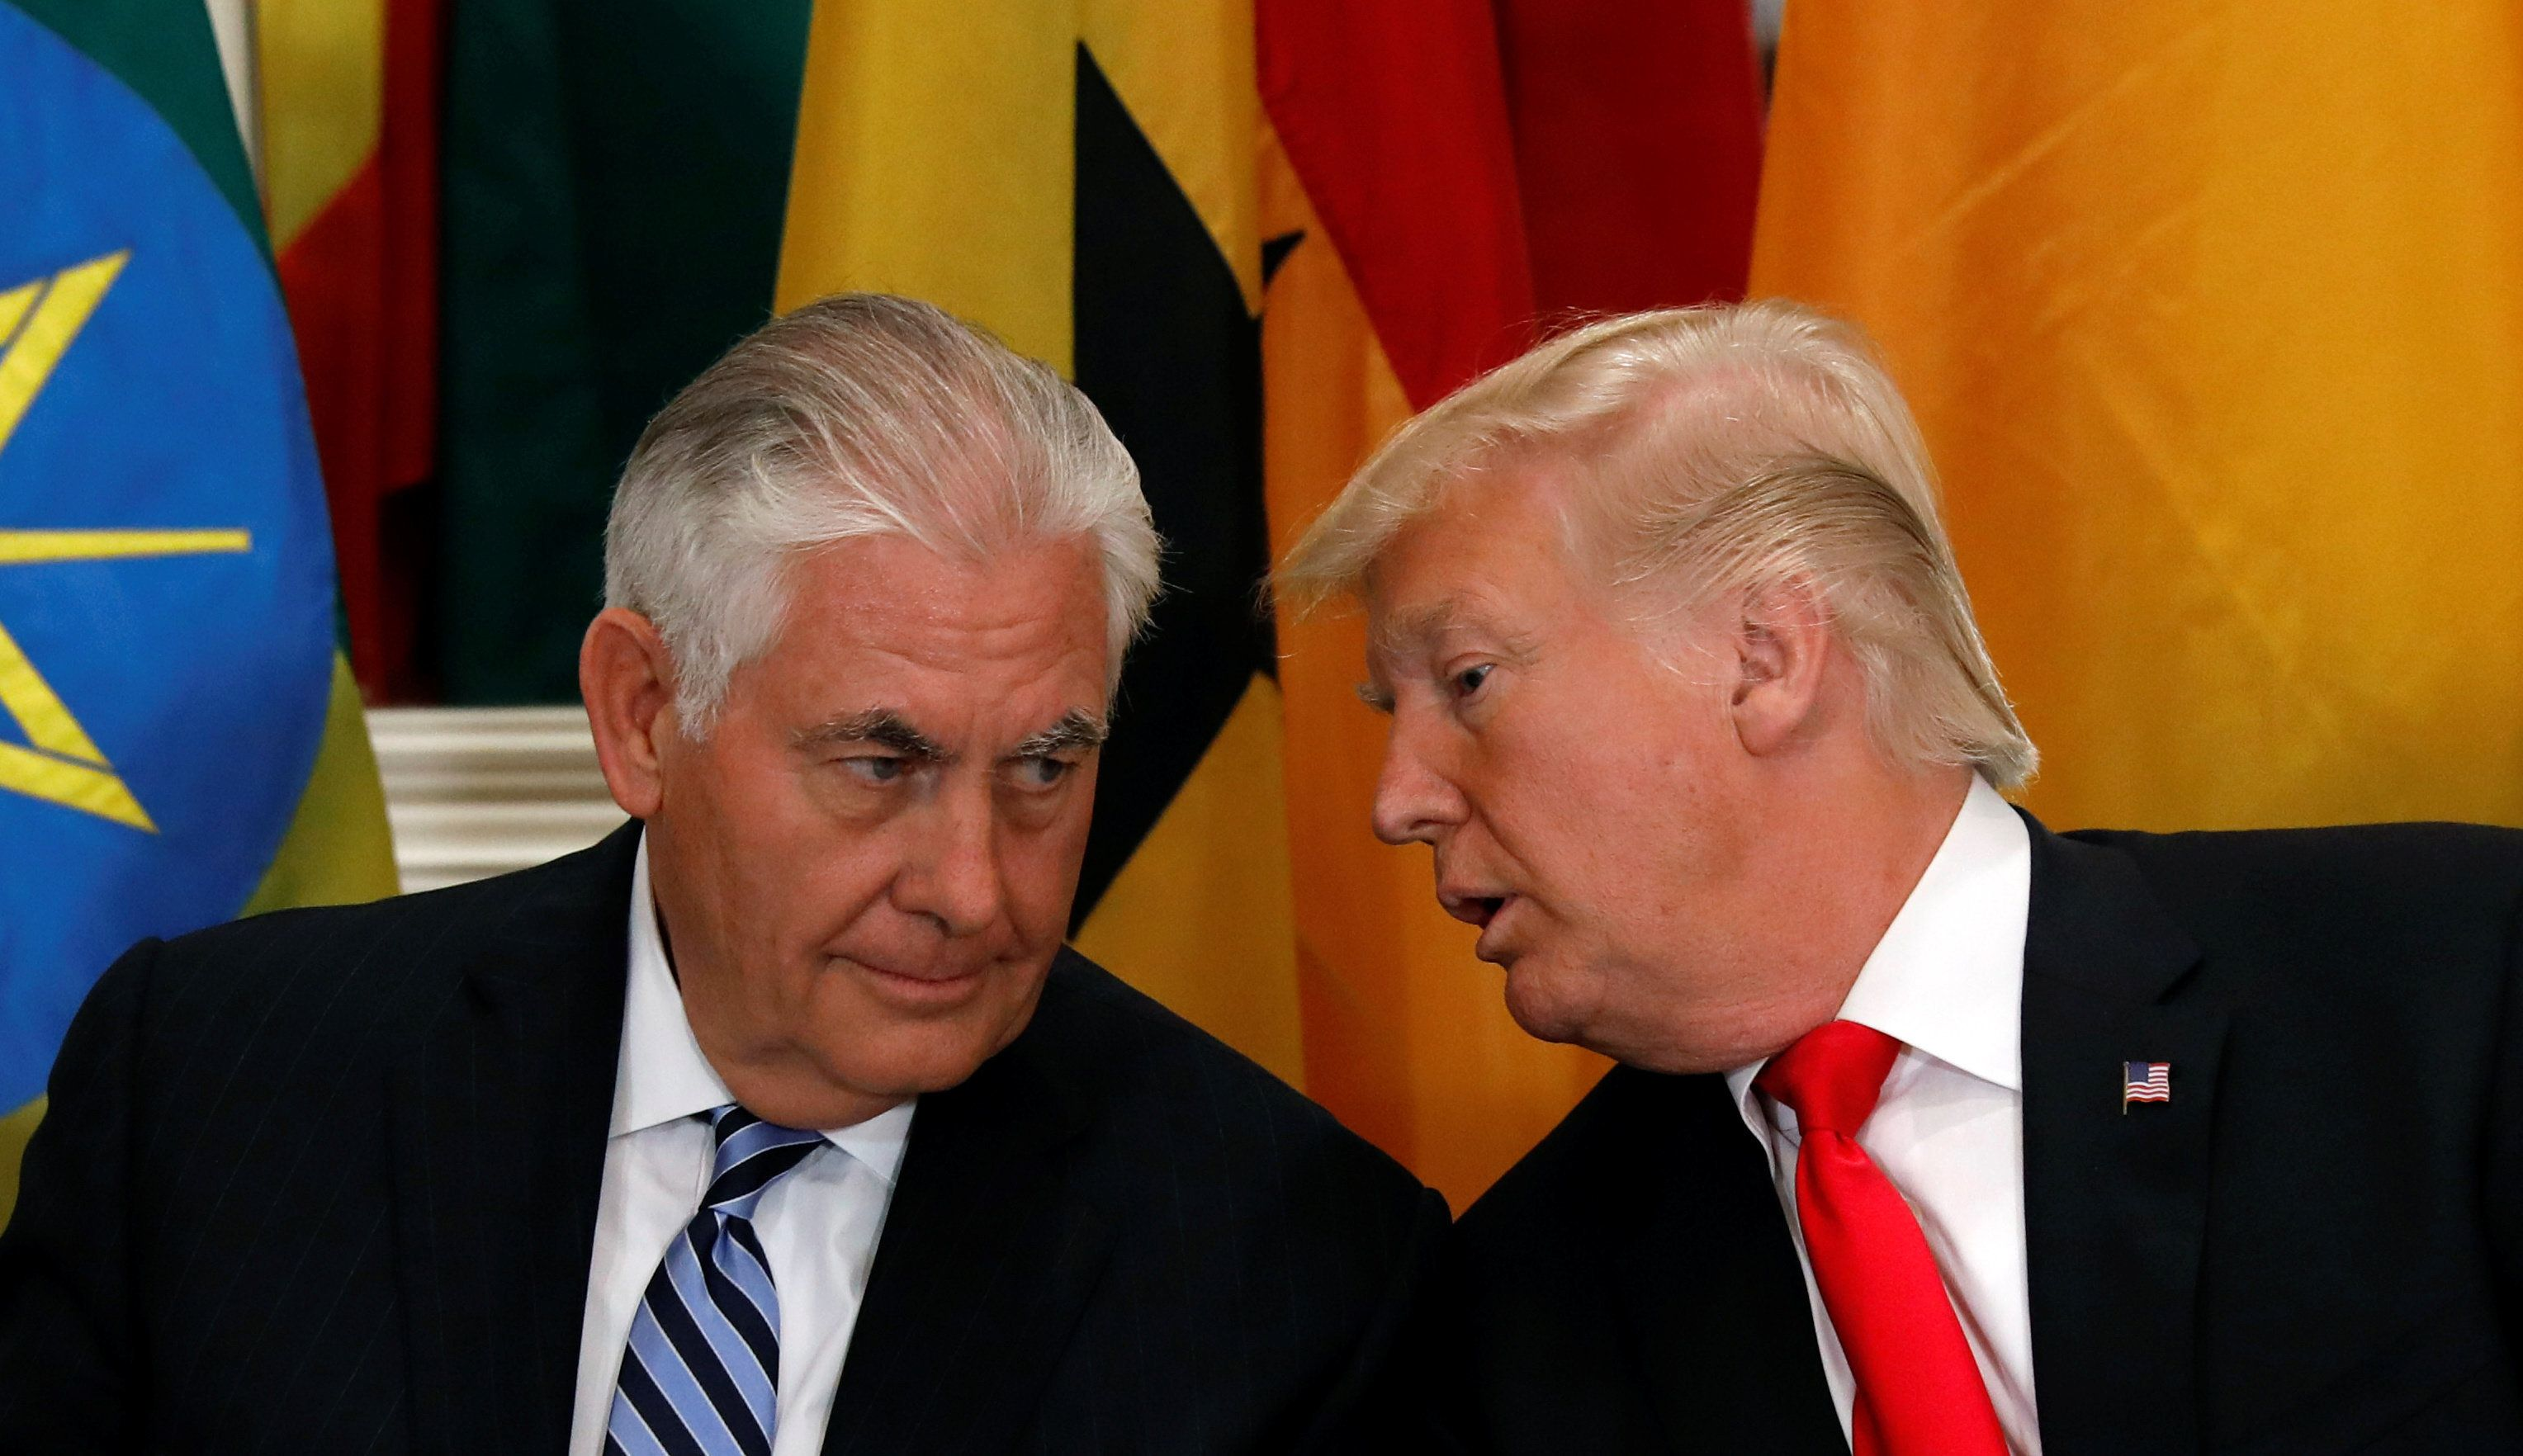 Republican Senator Corker blasts Trump for 'castrating' Tillerson